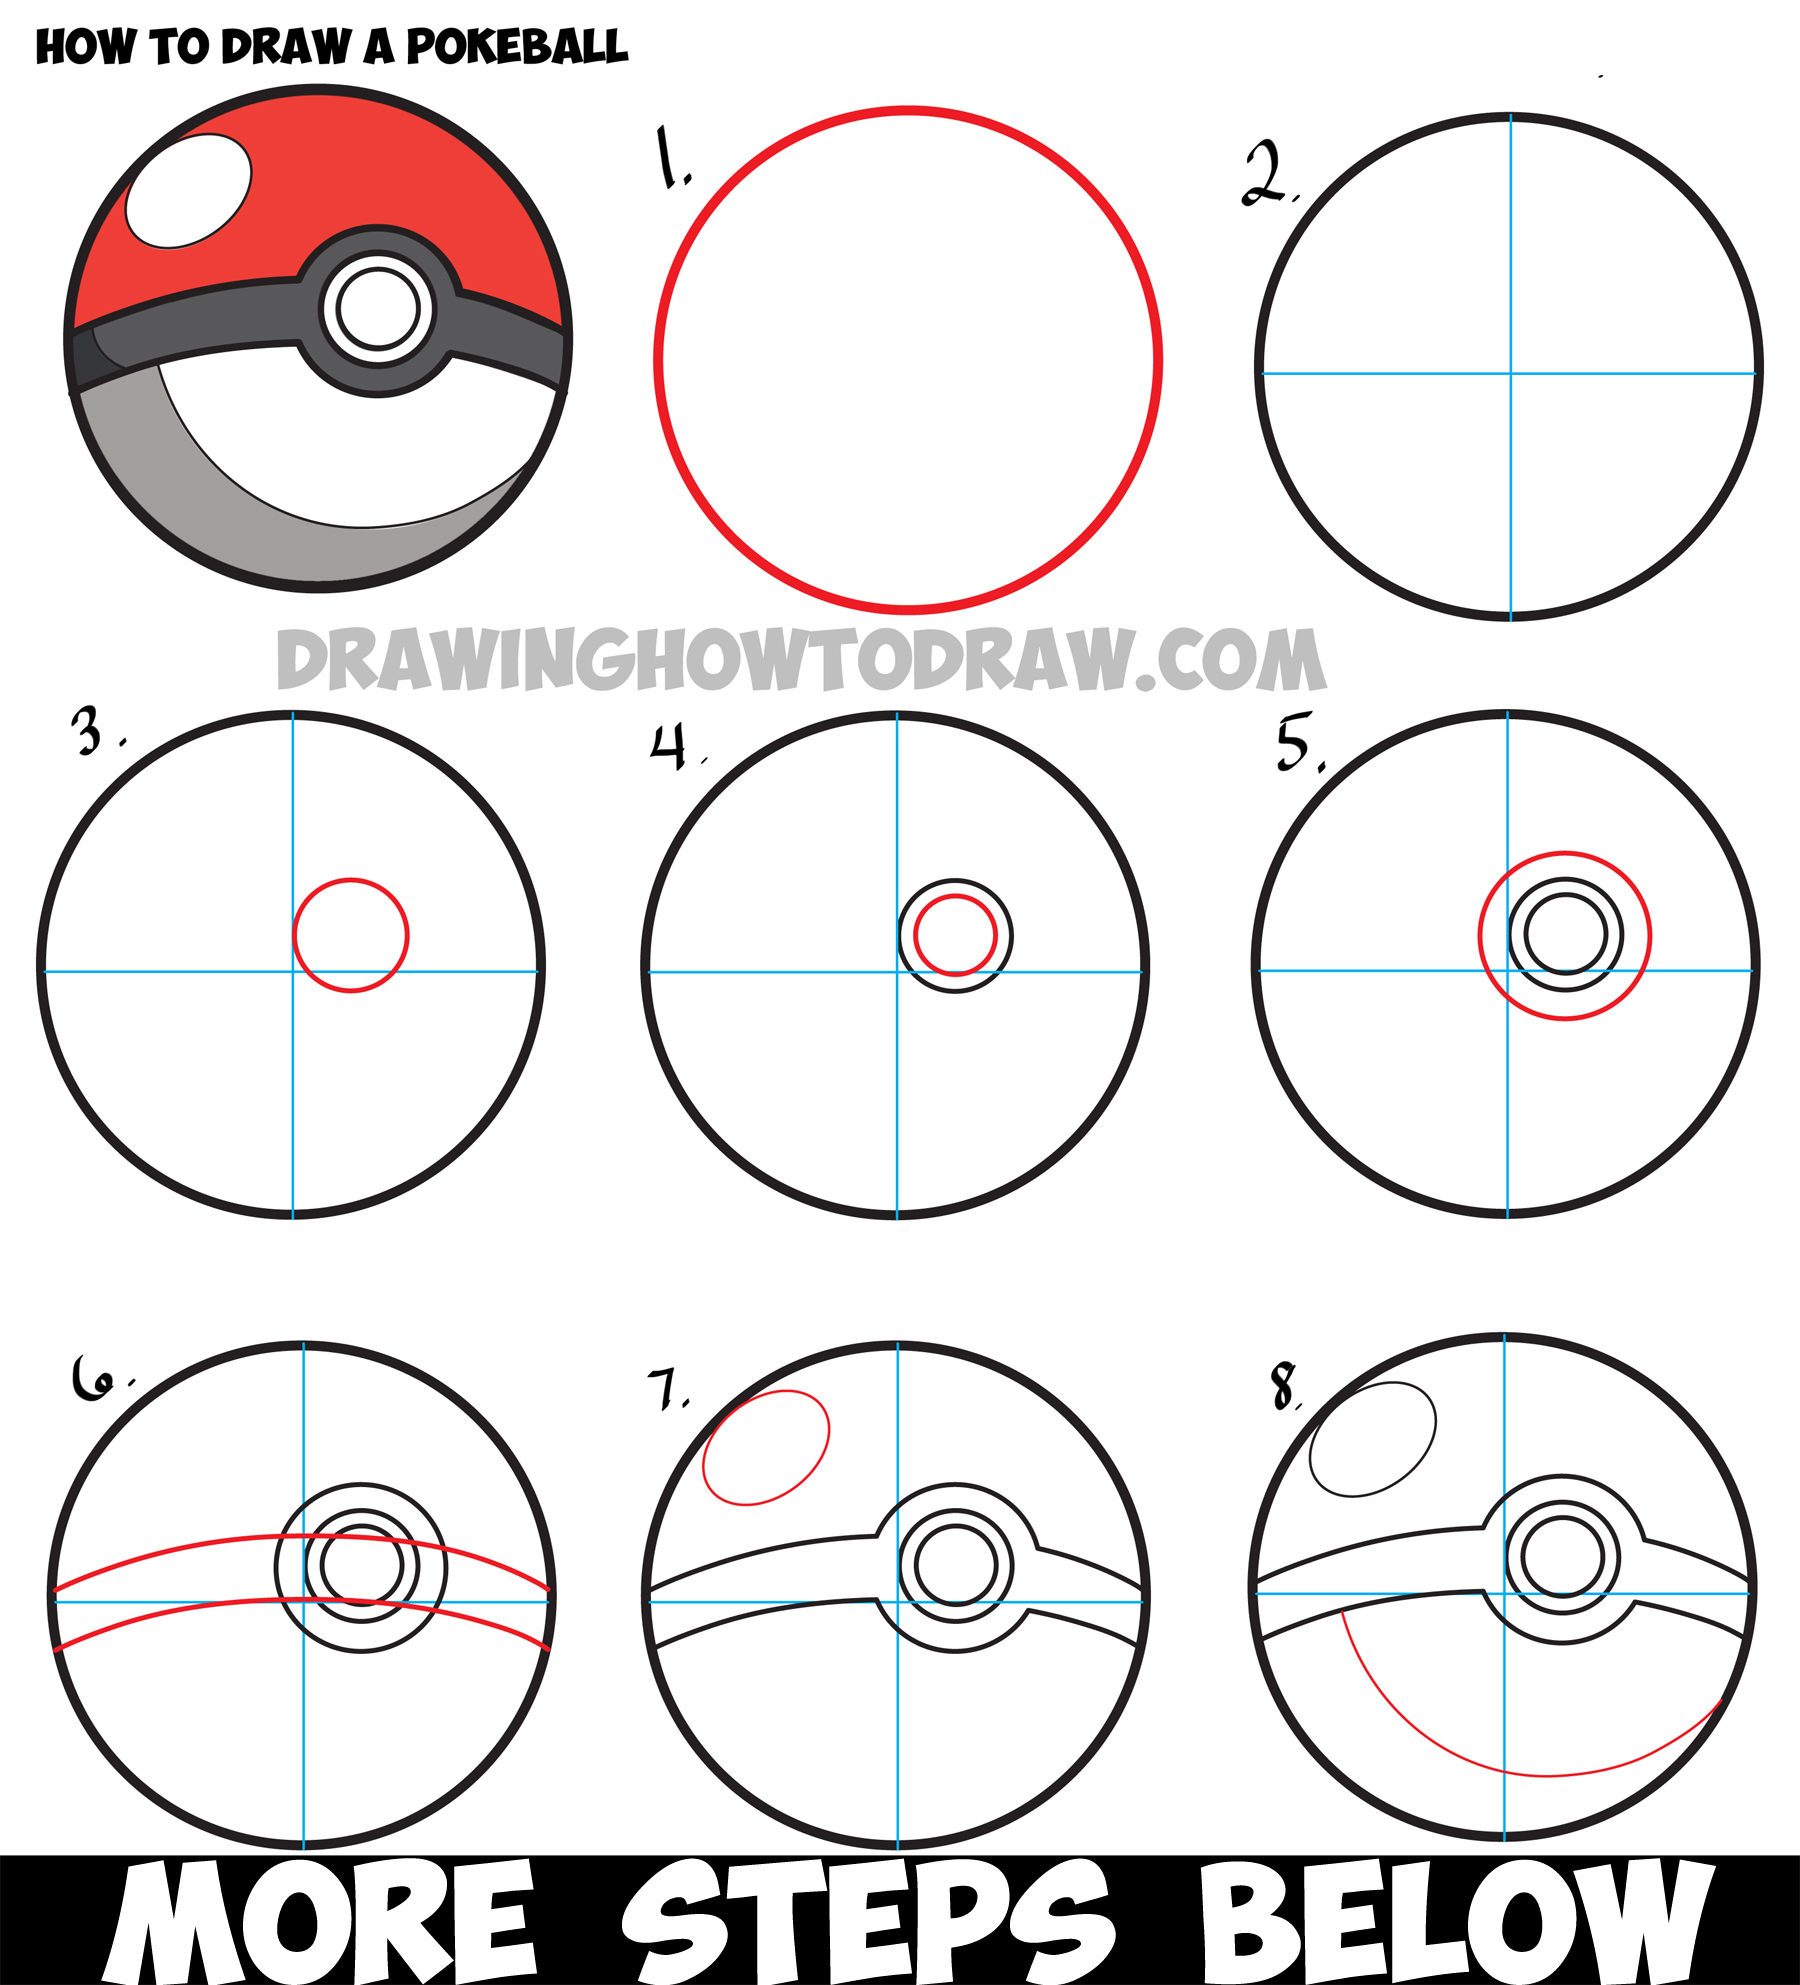 How to draw a pokeball from pokemon easy step by step drawing how to draw a pokeball from pokemon easy step by step drawing tutorial biocorpaavc Choice Image